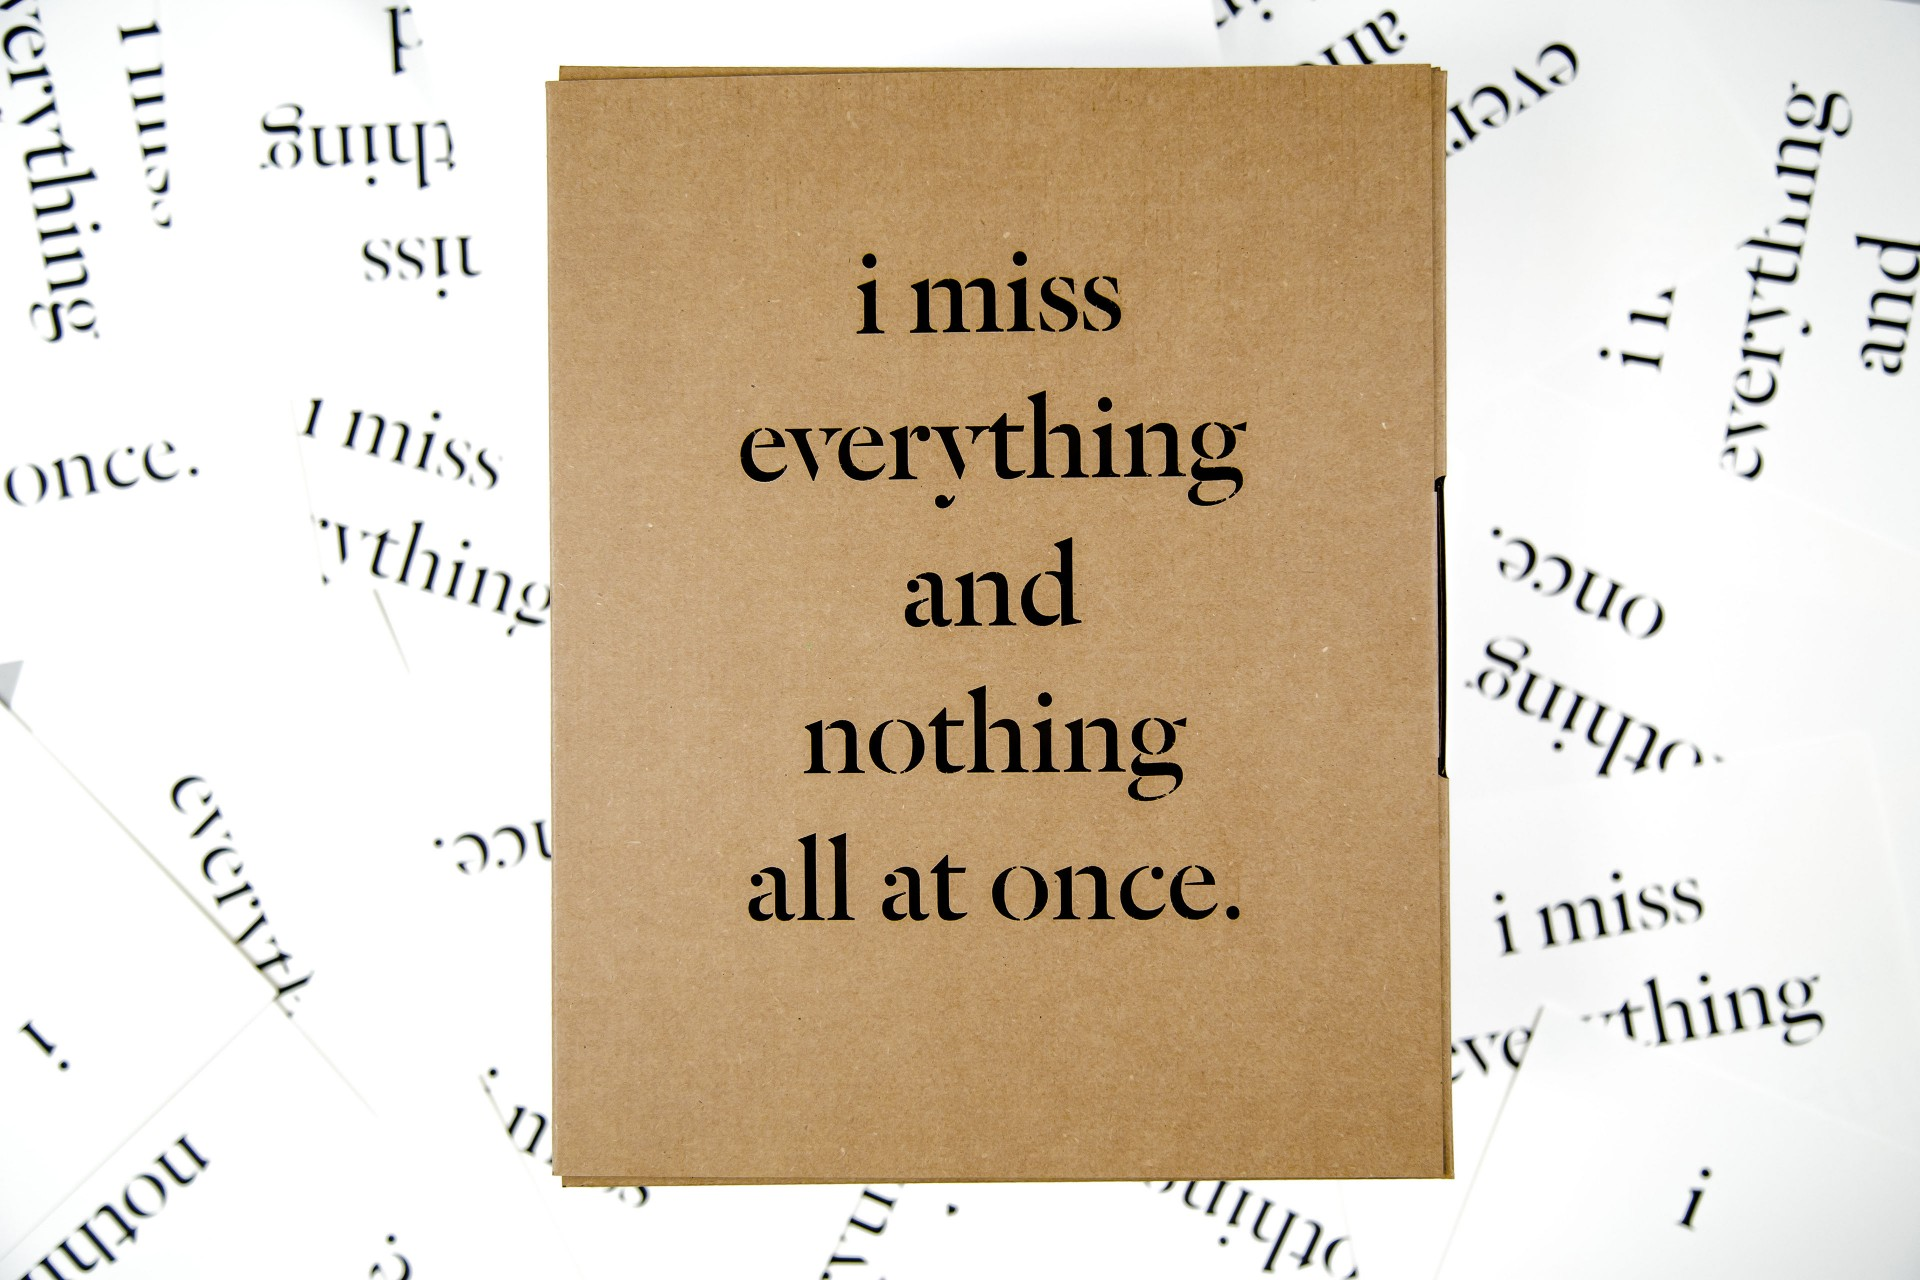 duy đào I MISS EVERYTHING AND NOTHING ALL AT ONCE